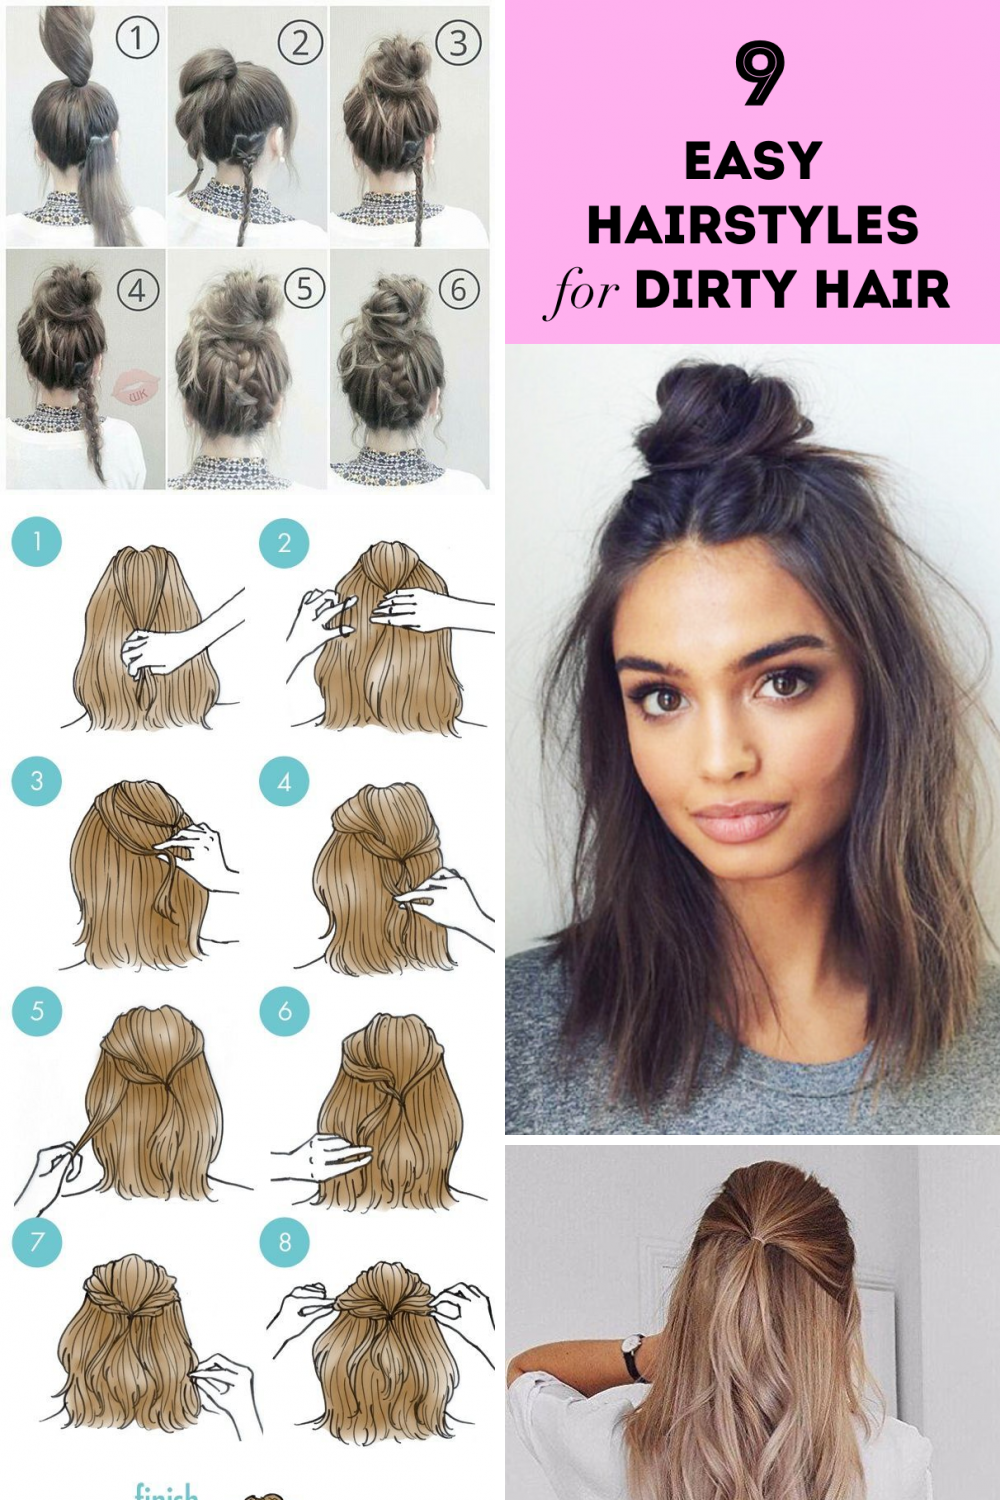 Pin On Cute Hairstyles In 2020 Hair Tutorials For Medium Hair Hair Styles Easy Hairstyles